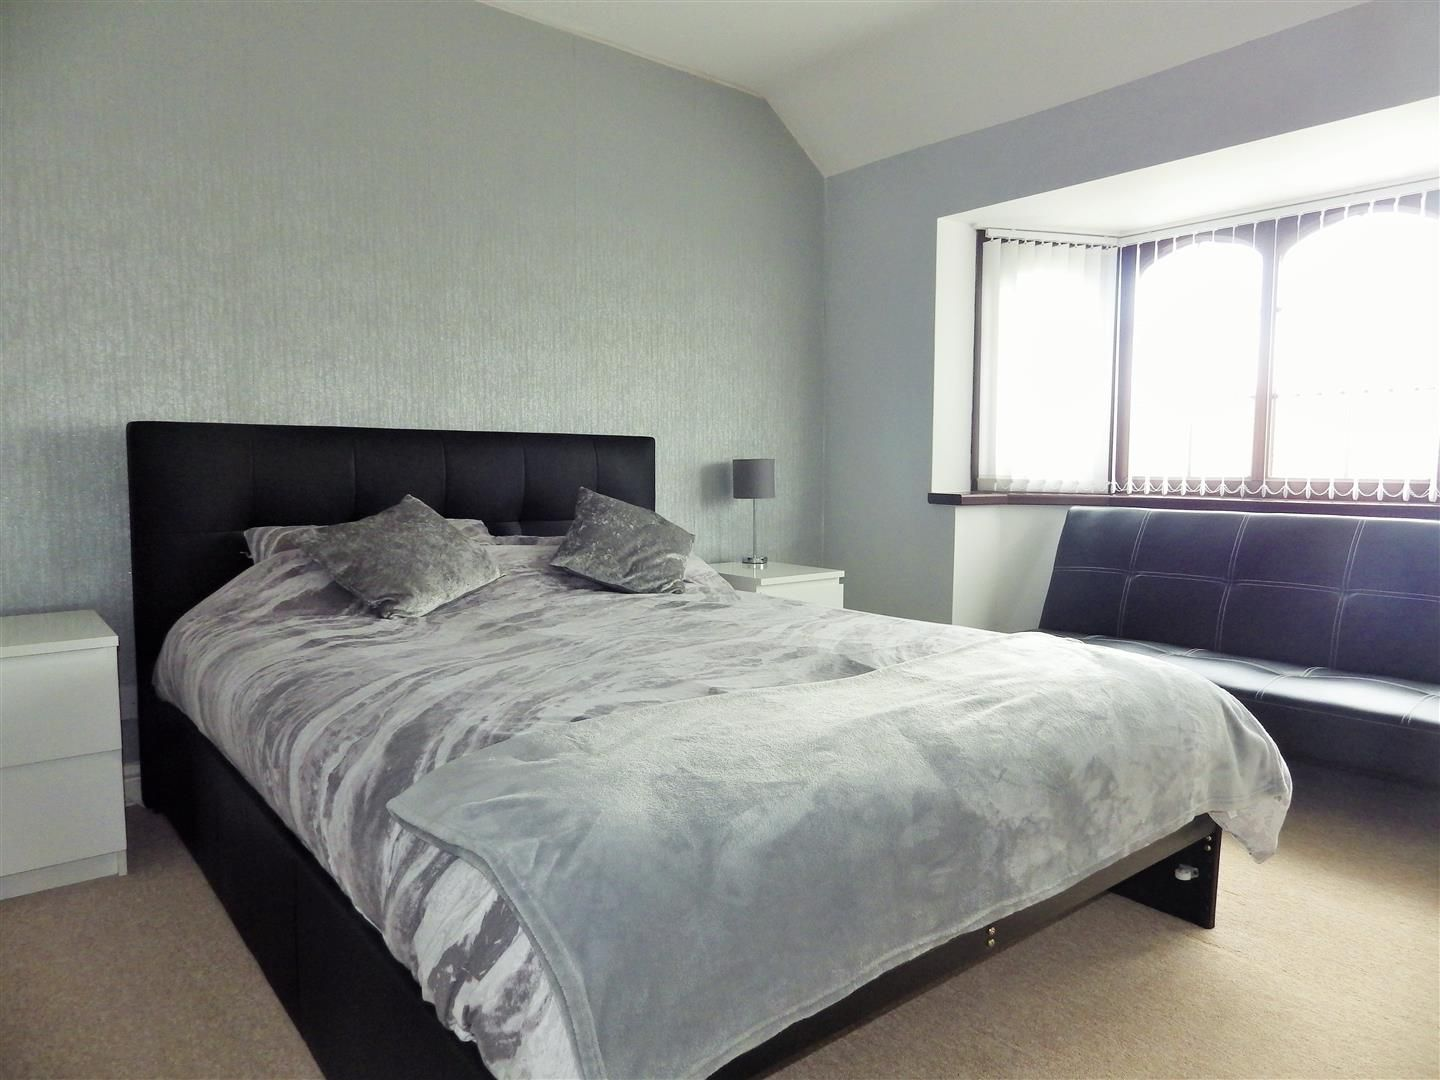 3 bed semi-detached for sale in Hasbury 9